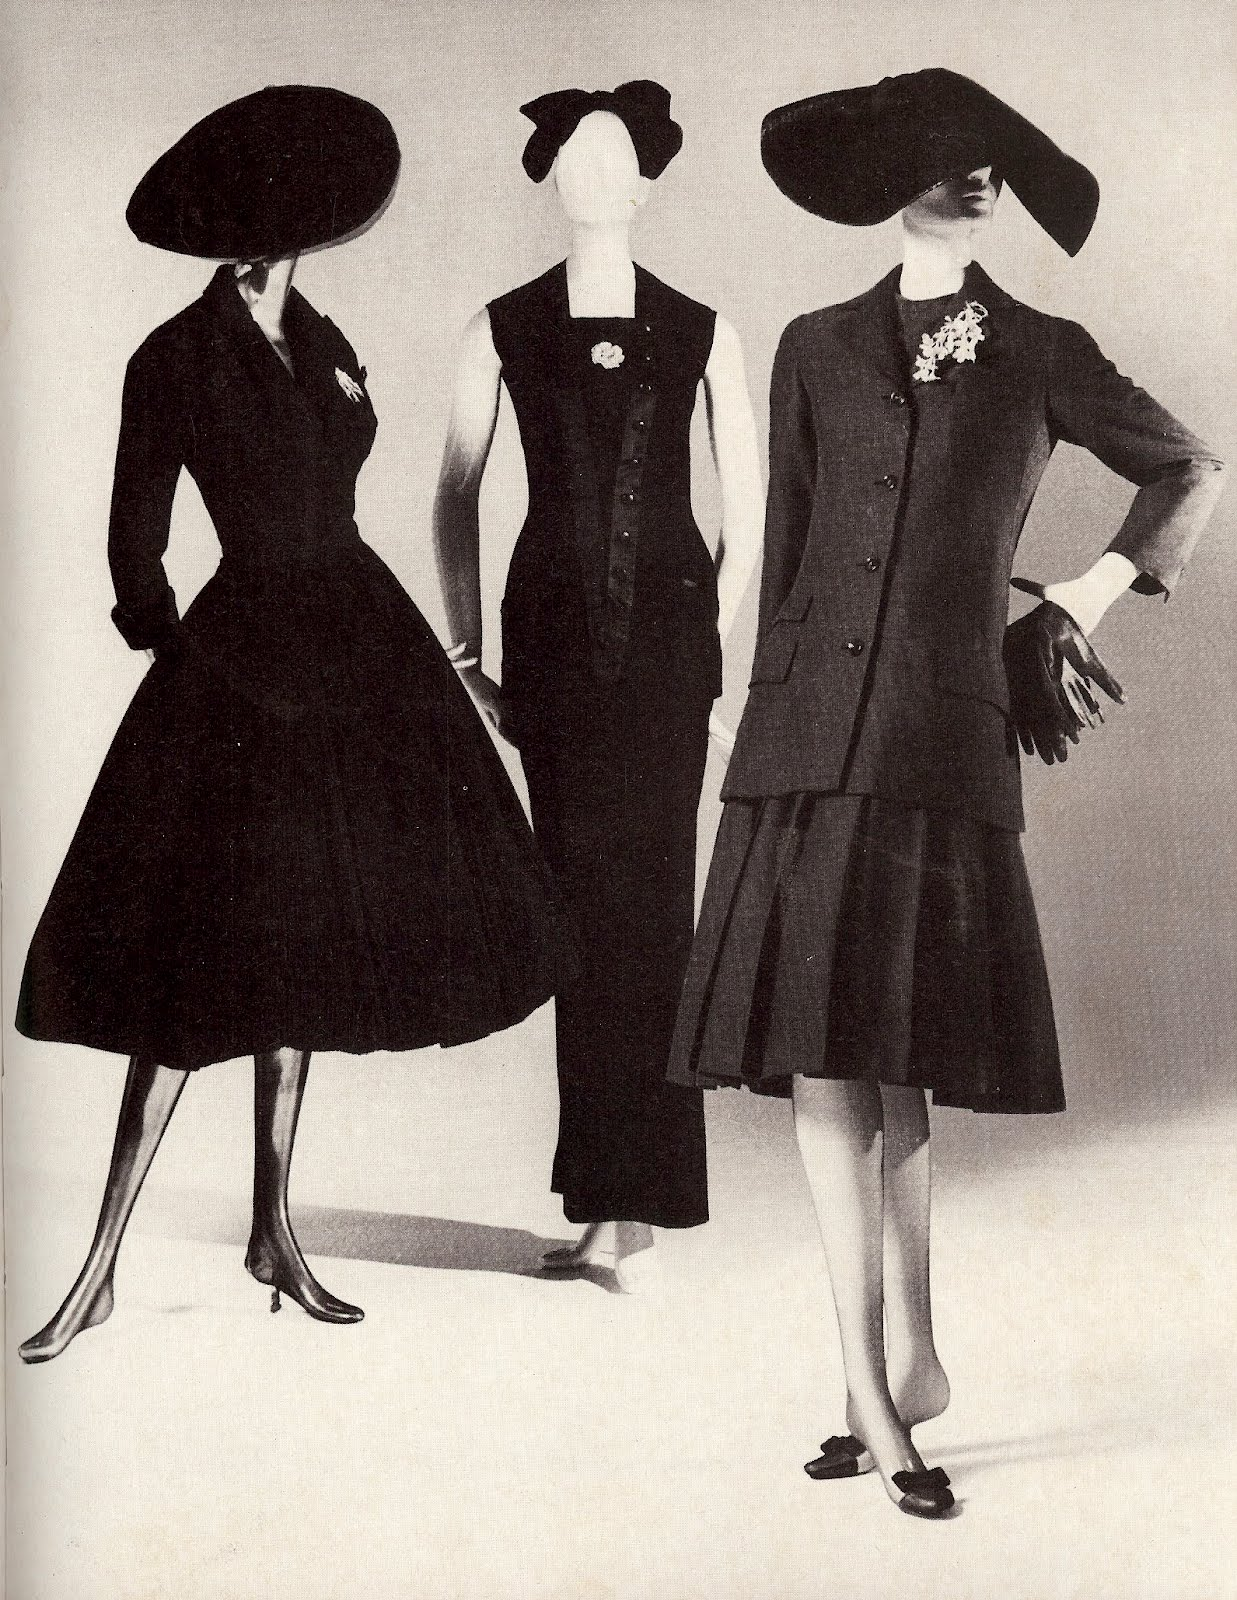 art quill studio fashion from 1907 to 1967wearable artmarie therese wisniowski. Black Bedroom Furniture Sets. Home Design Ideas